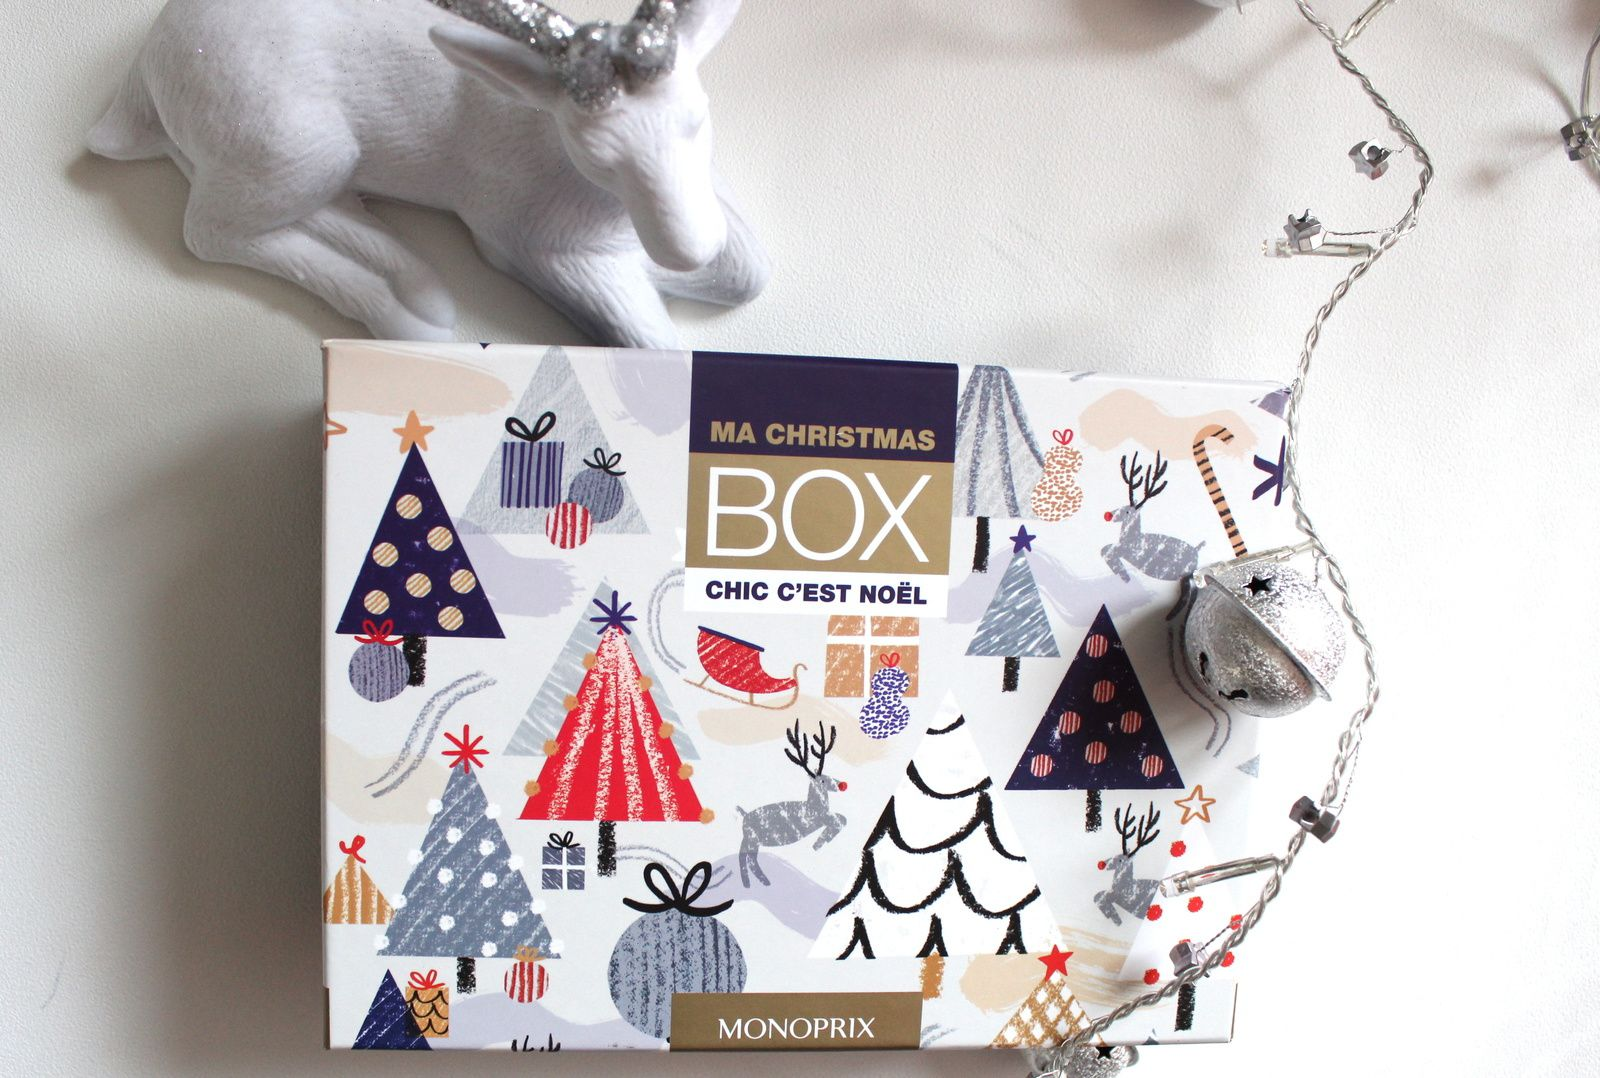 Ma Christmas box by Monoprix